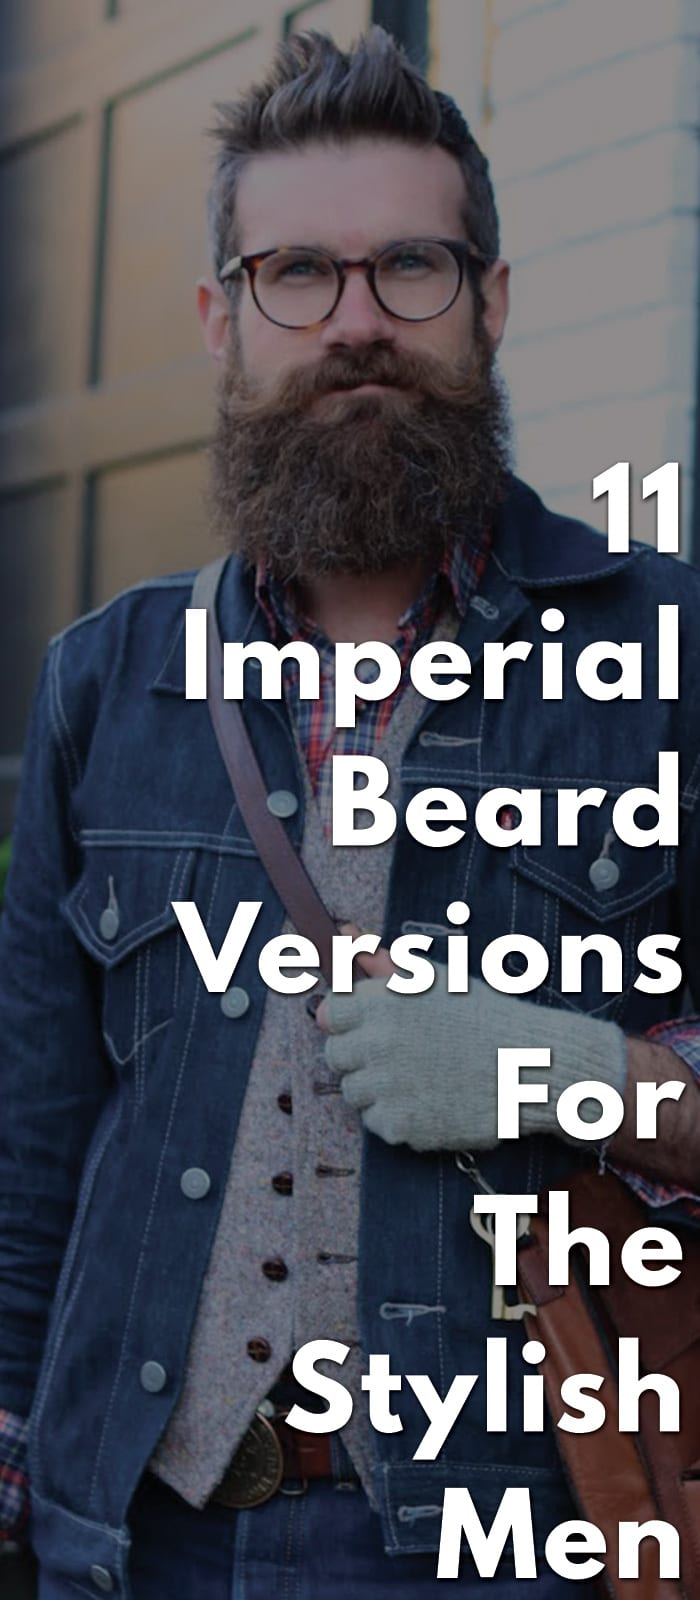 11-Imperial-Beard-Versions-For-The-Stylish-Men.